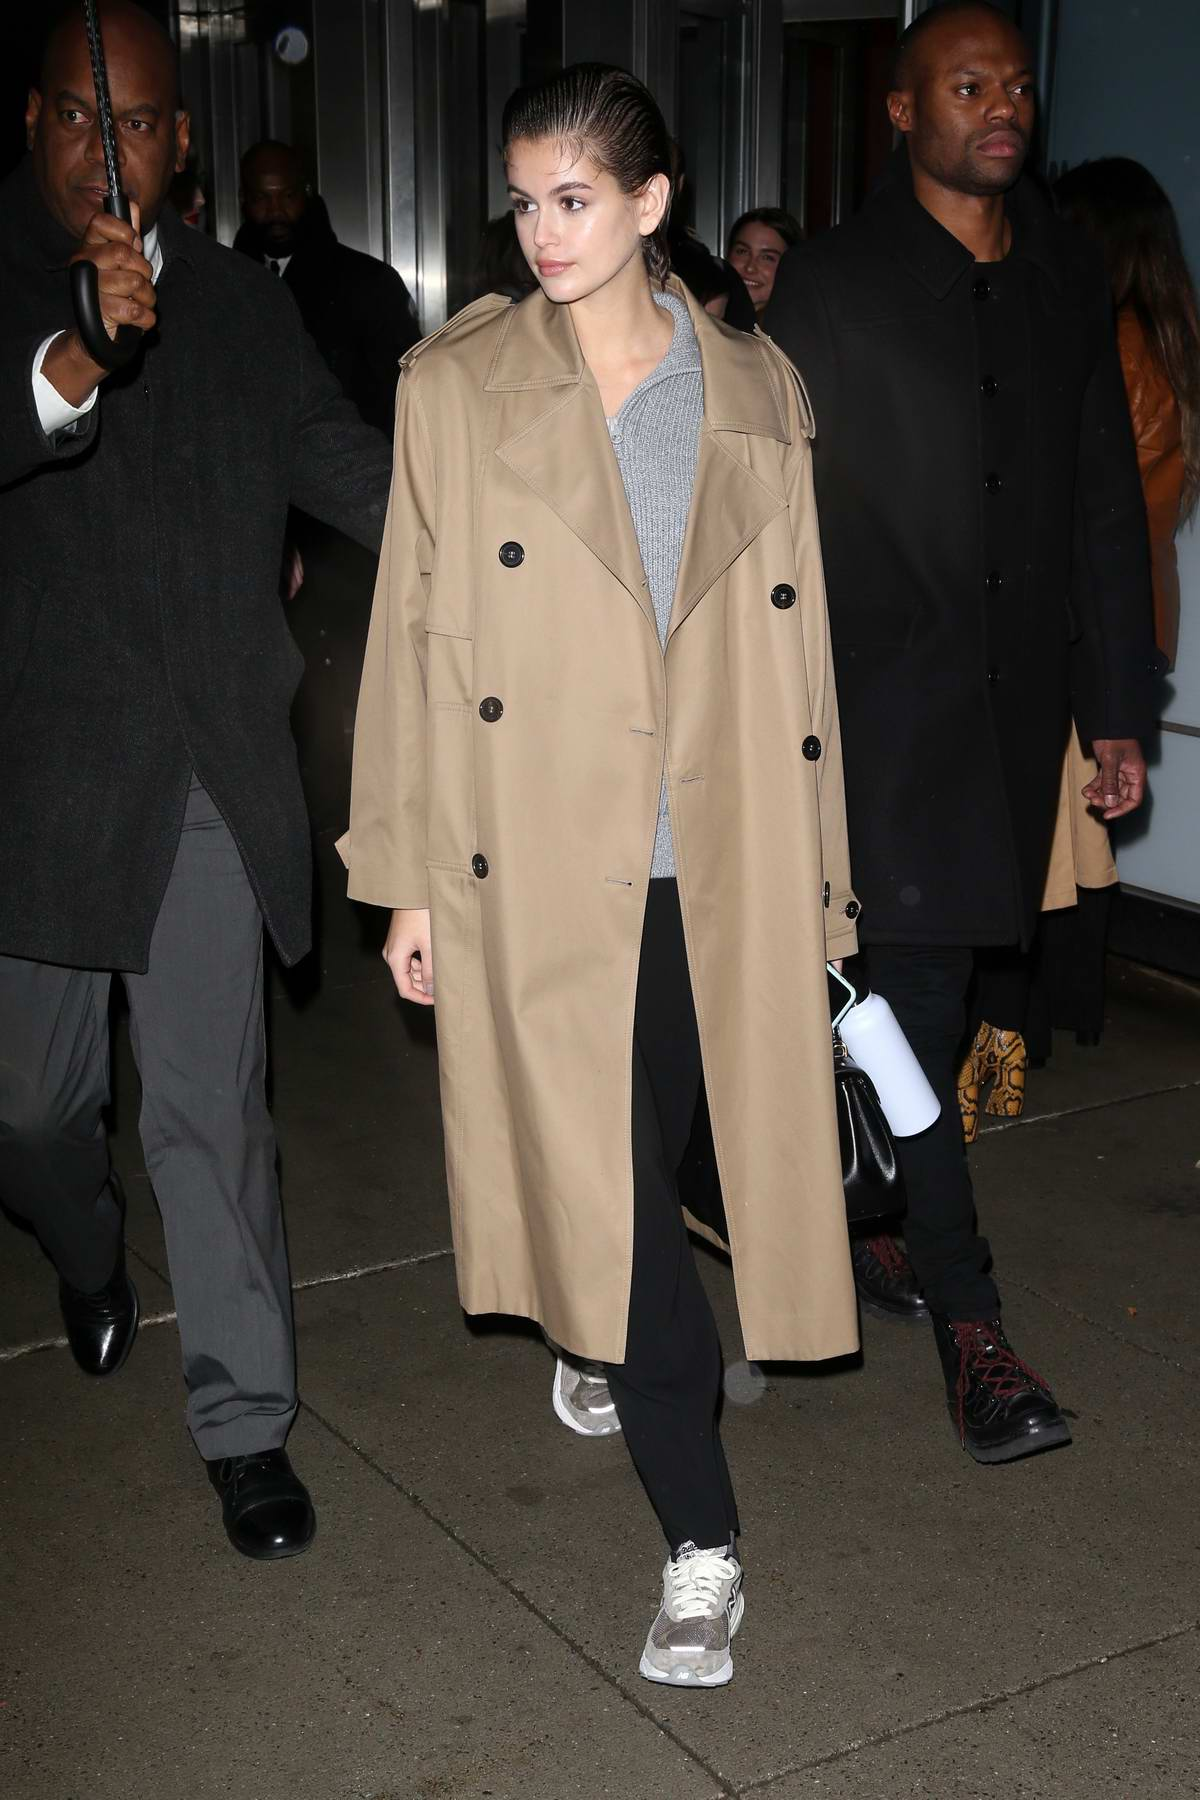 Kaia Gerber seen arriving at the Proenza Schouler show during NYFW 2020 in New York City